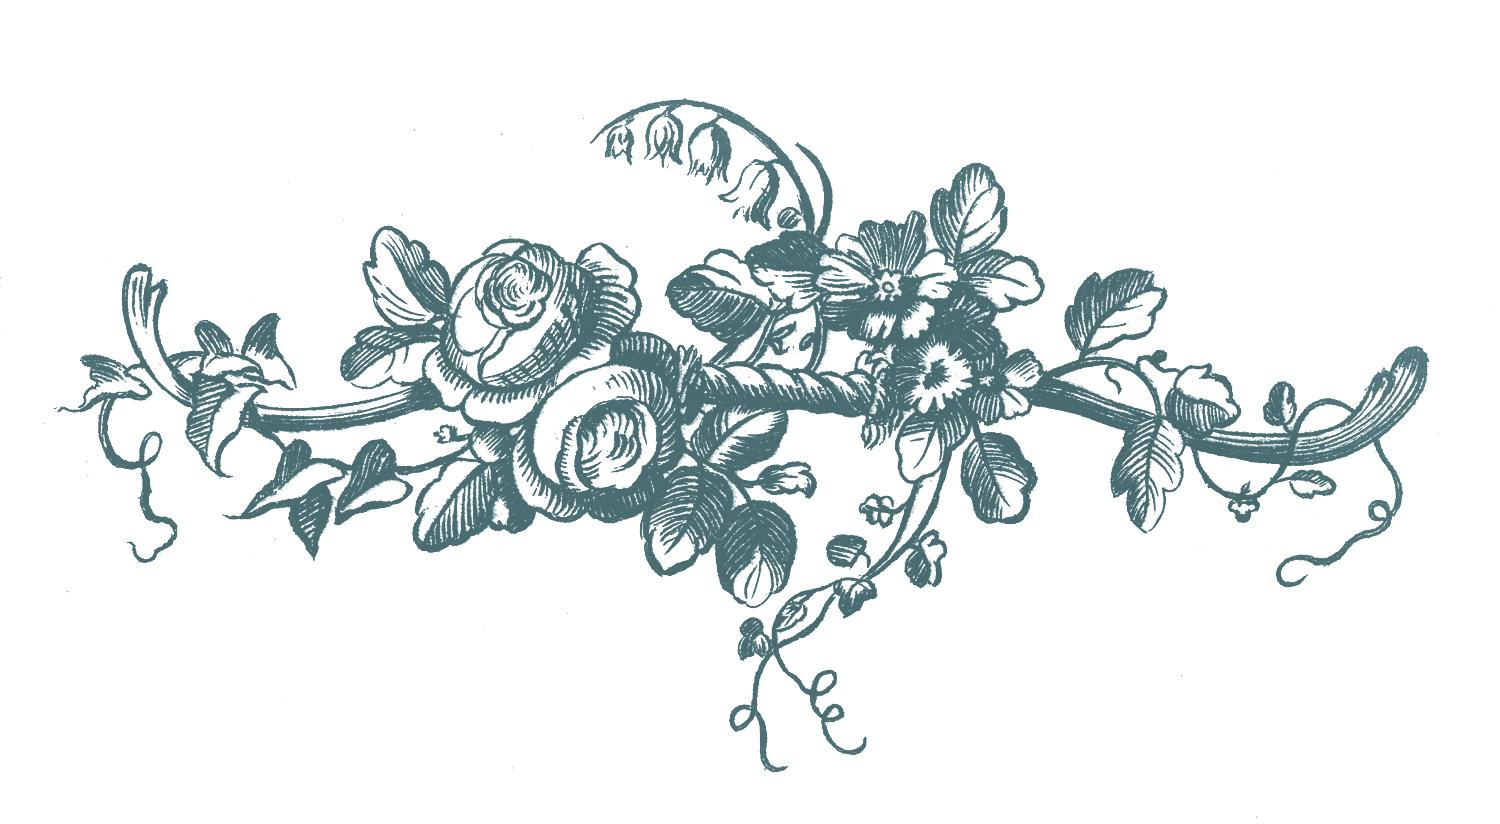 Top Flower Clip Art For Engraving Library » Free Vector Art.